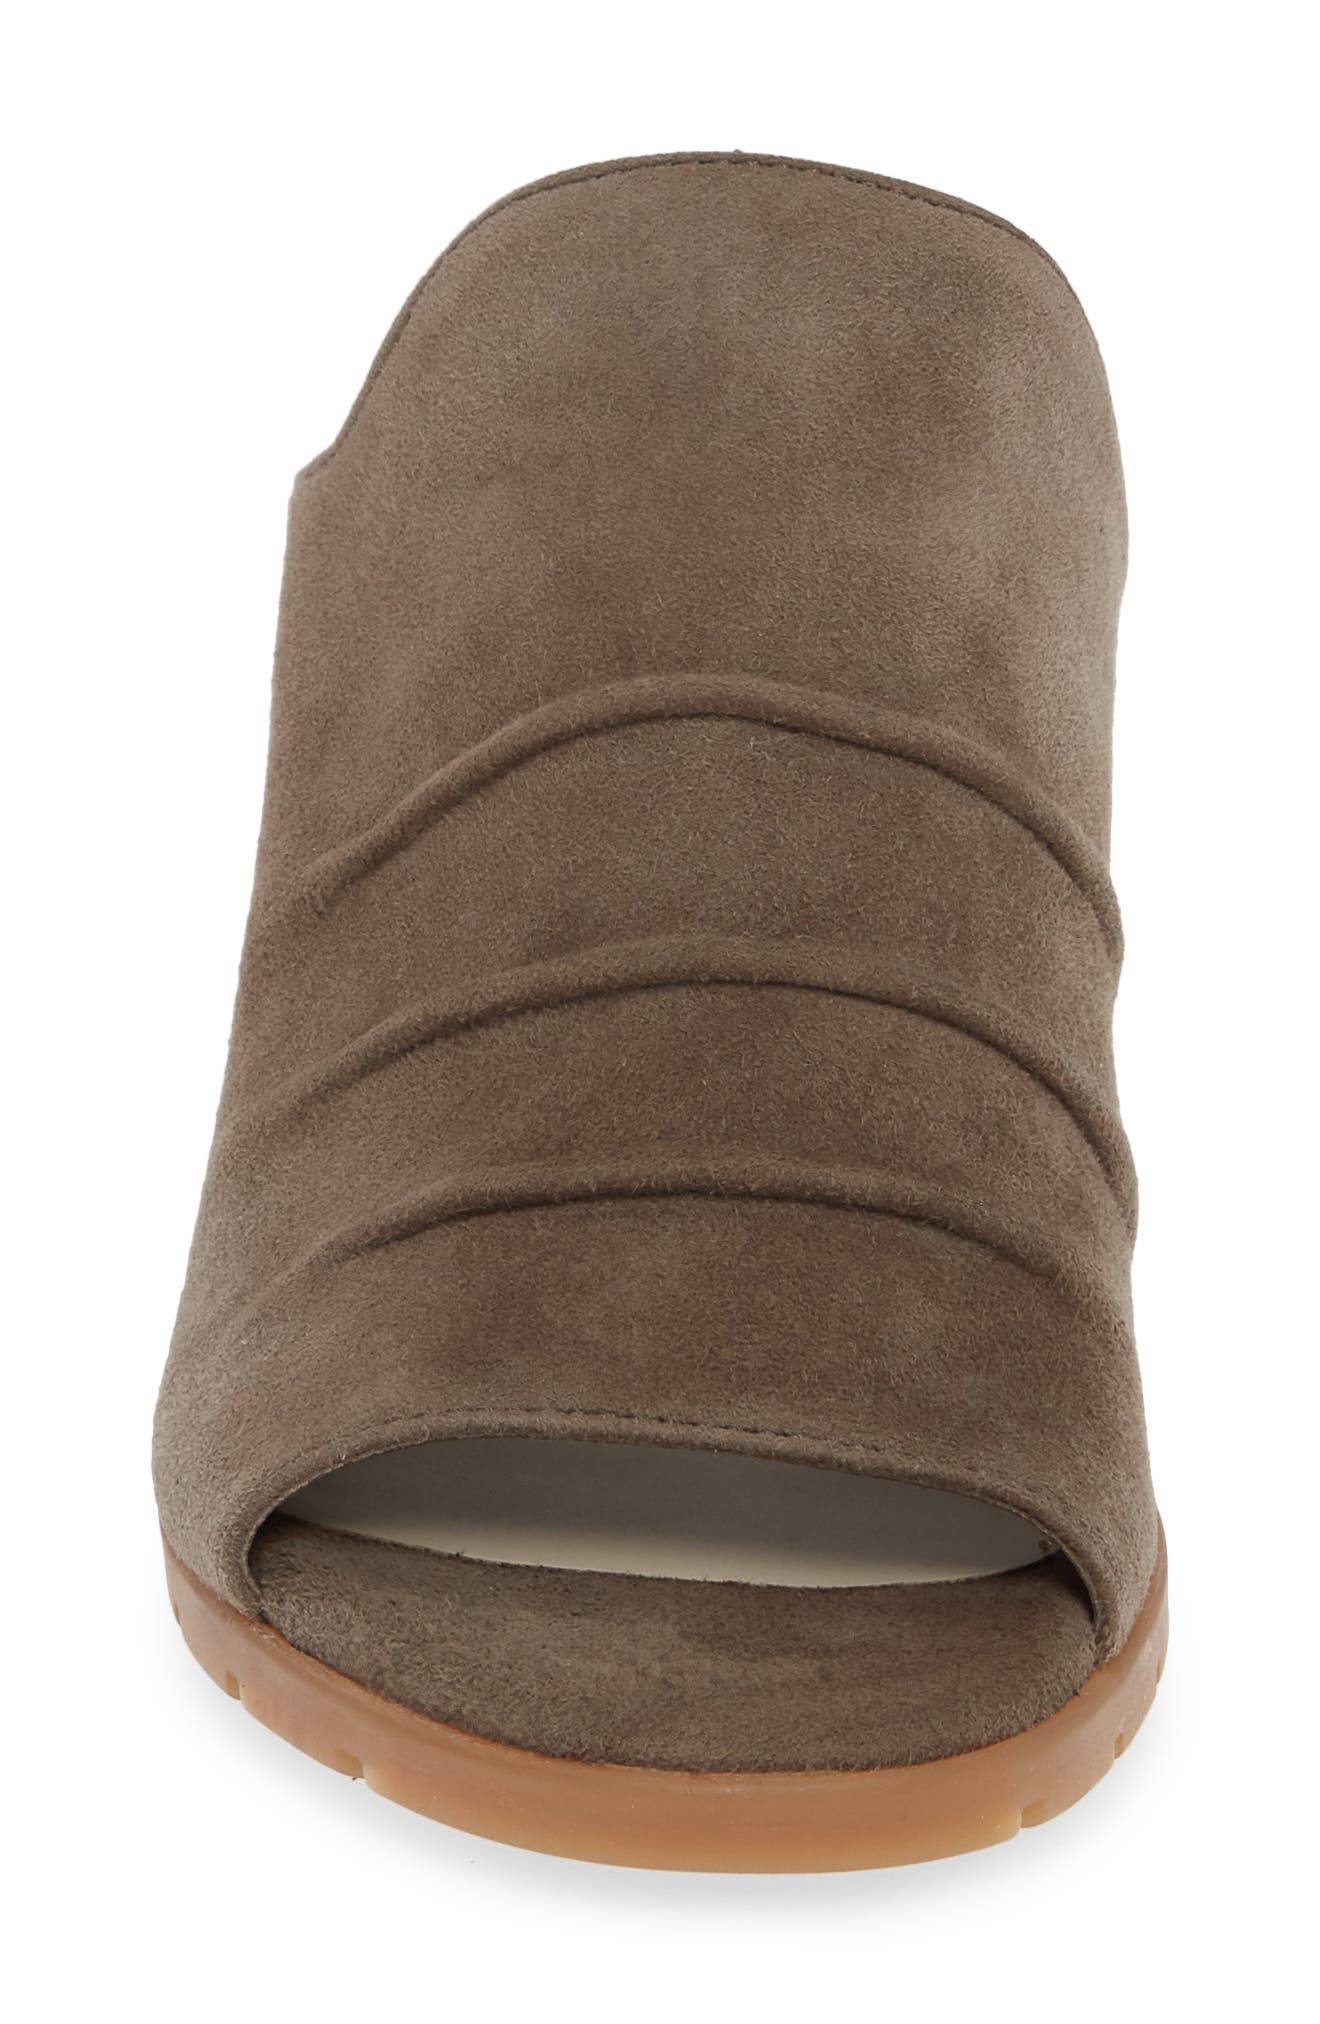 Aim to Pleat Mule,                             Alternate thumbnail 4, color,                             BROWN LEATHER